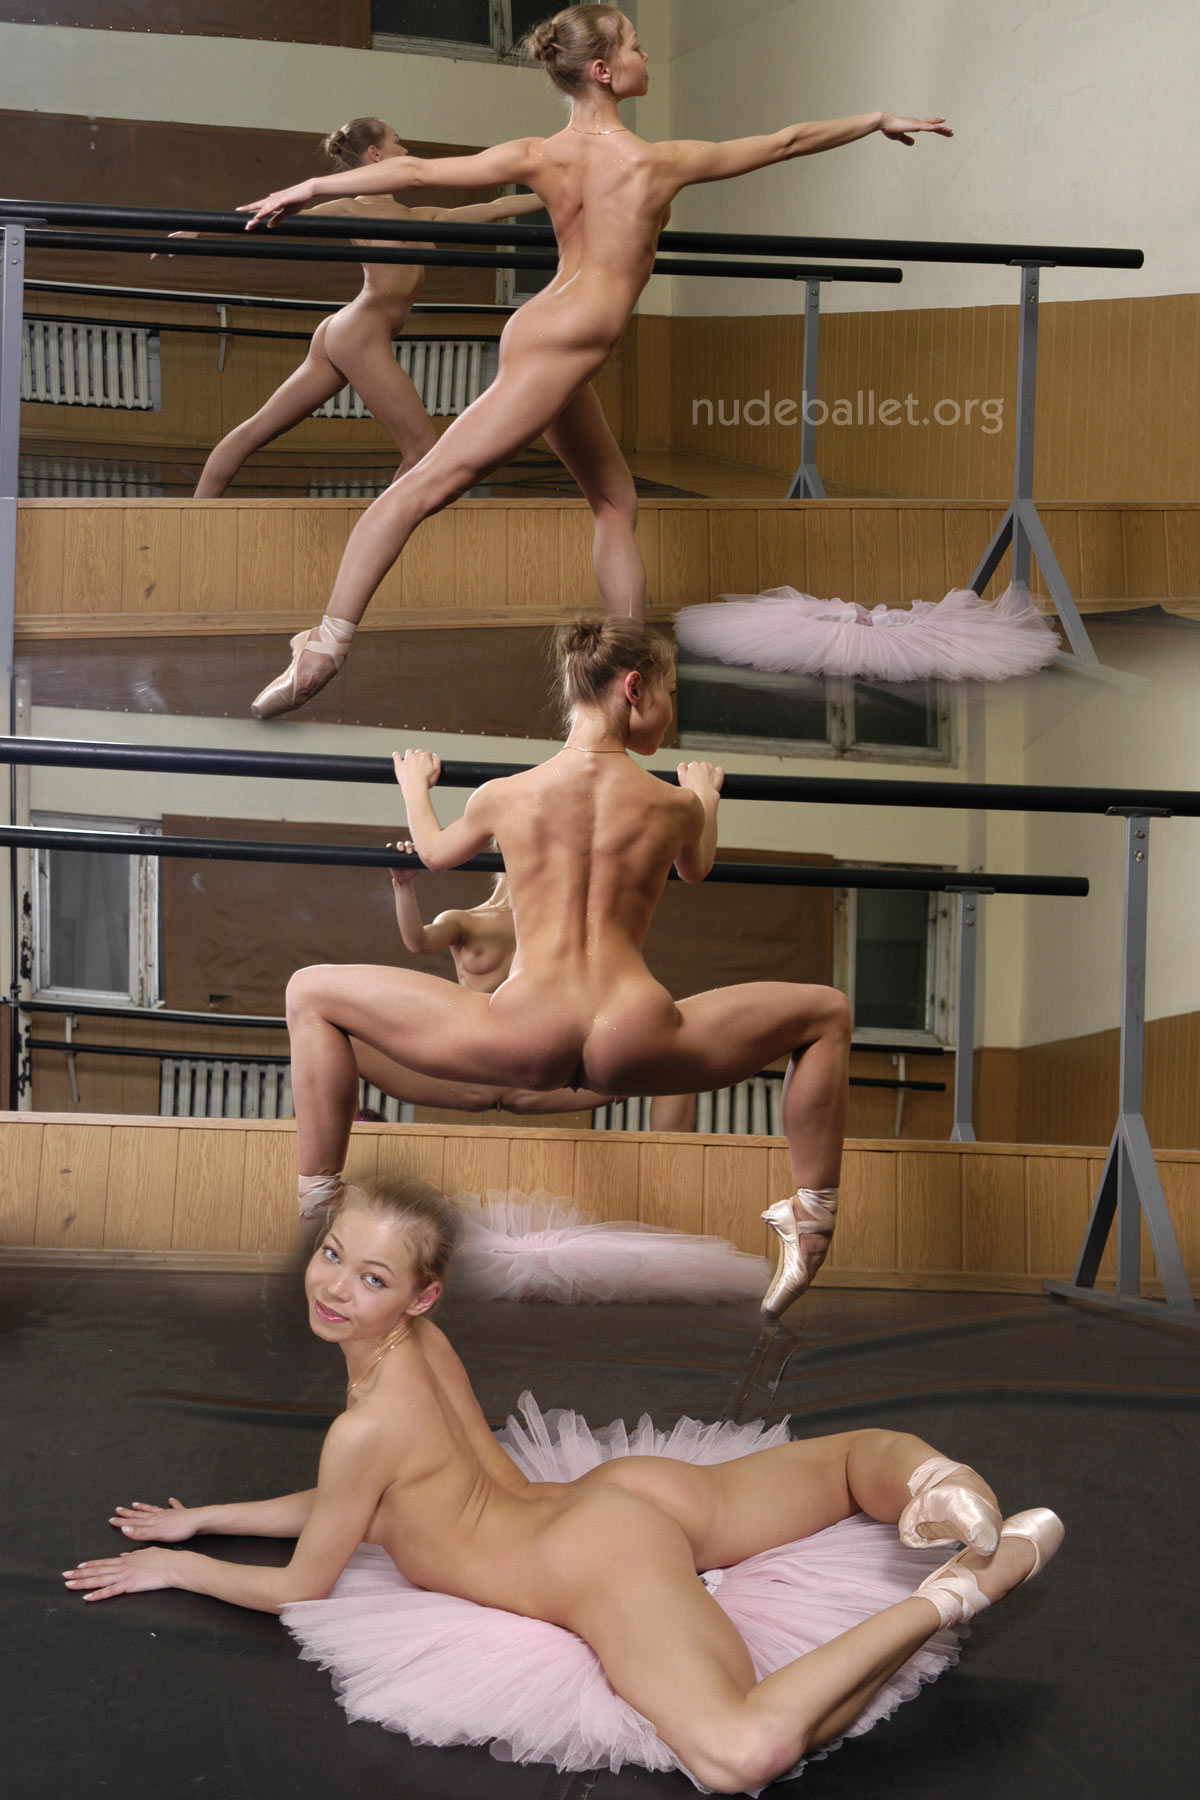 Flexible nude ballet girls